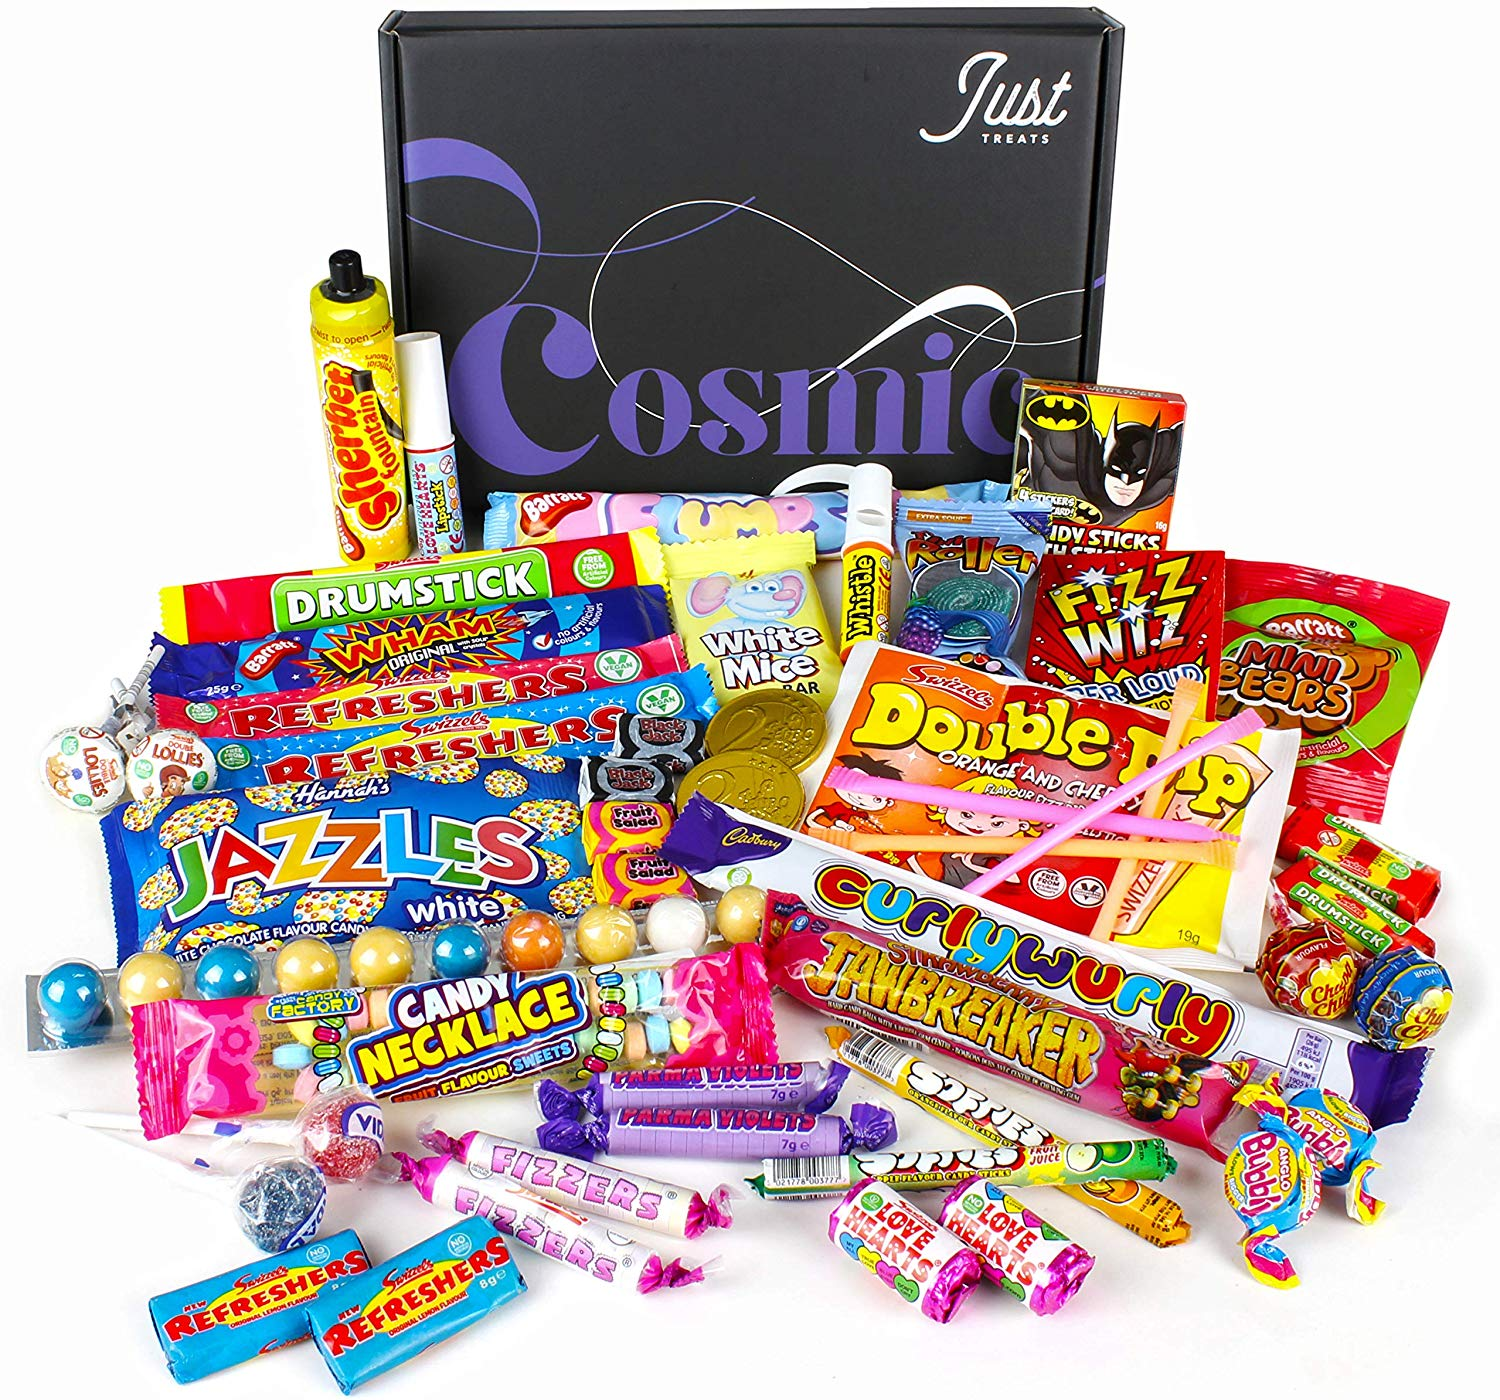 Retro Sweets Gift Box: Just Treats Cosmic Gift Box